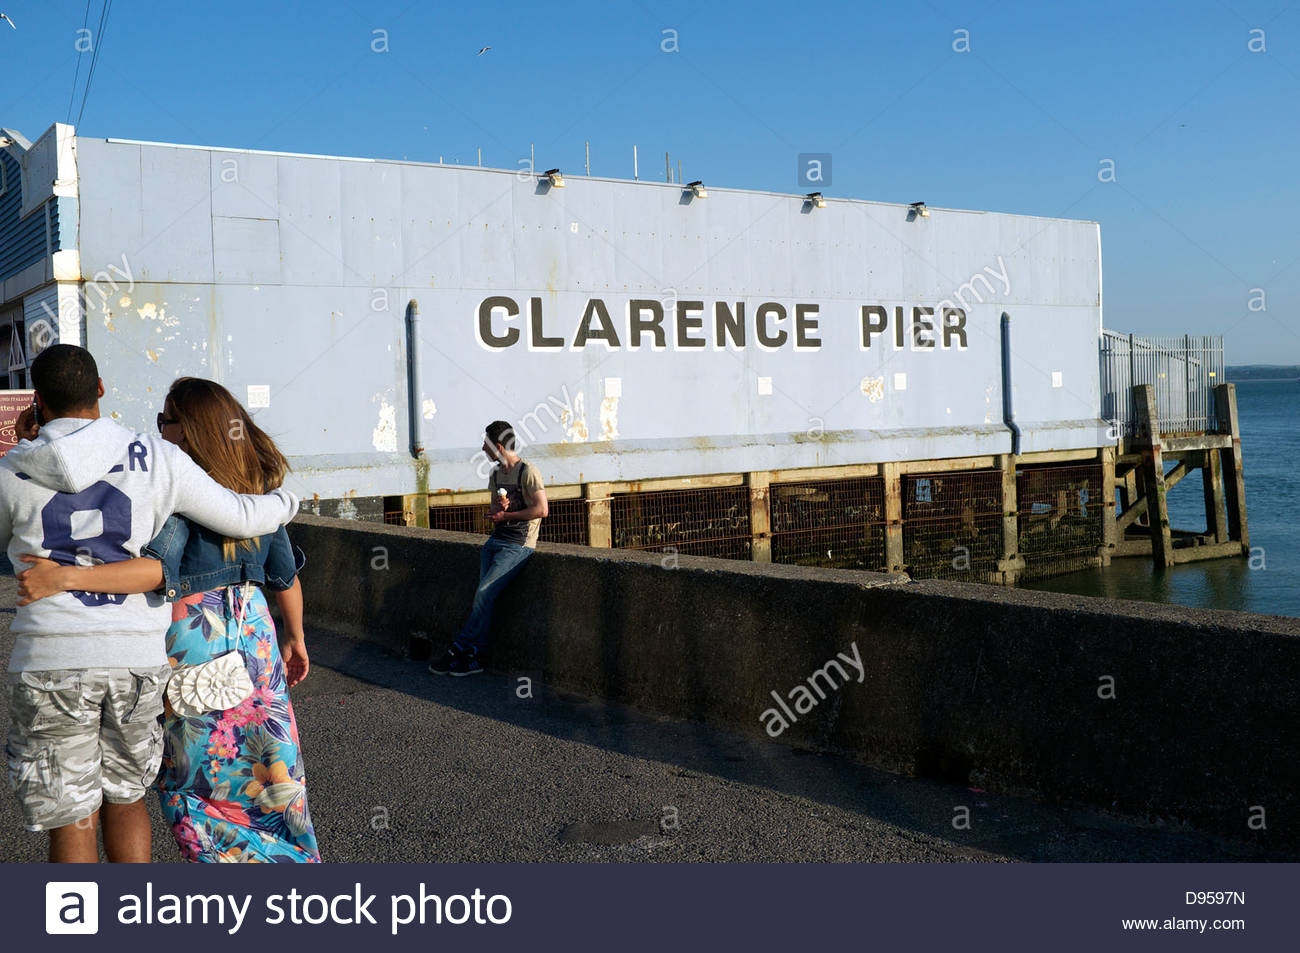 People relax by Clarence Pier on Southsea seafront, Portsmouth, Hampshire, UK. Stock Photo